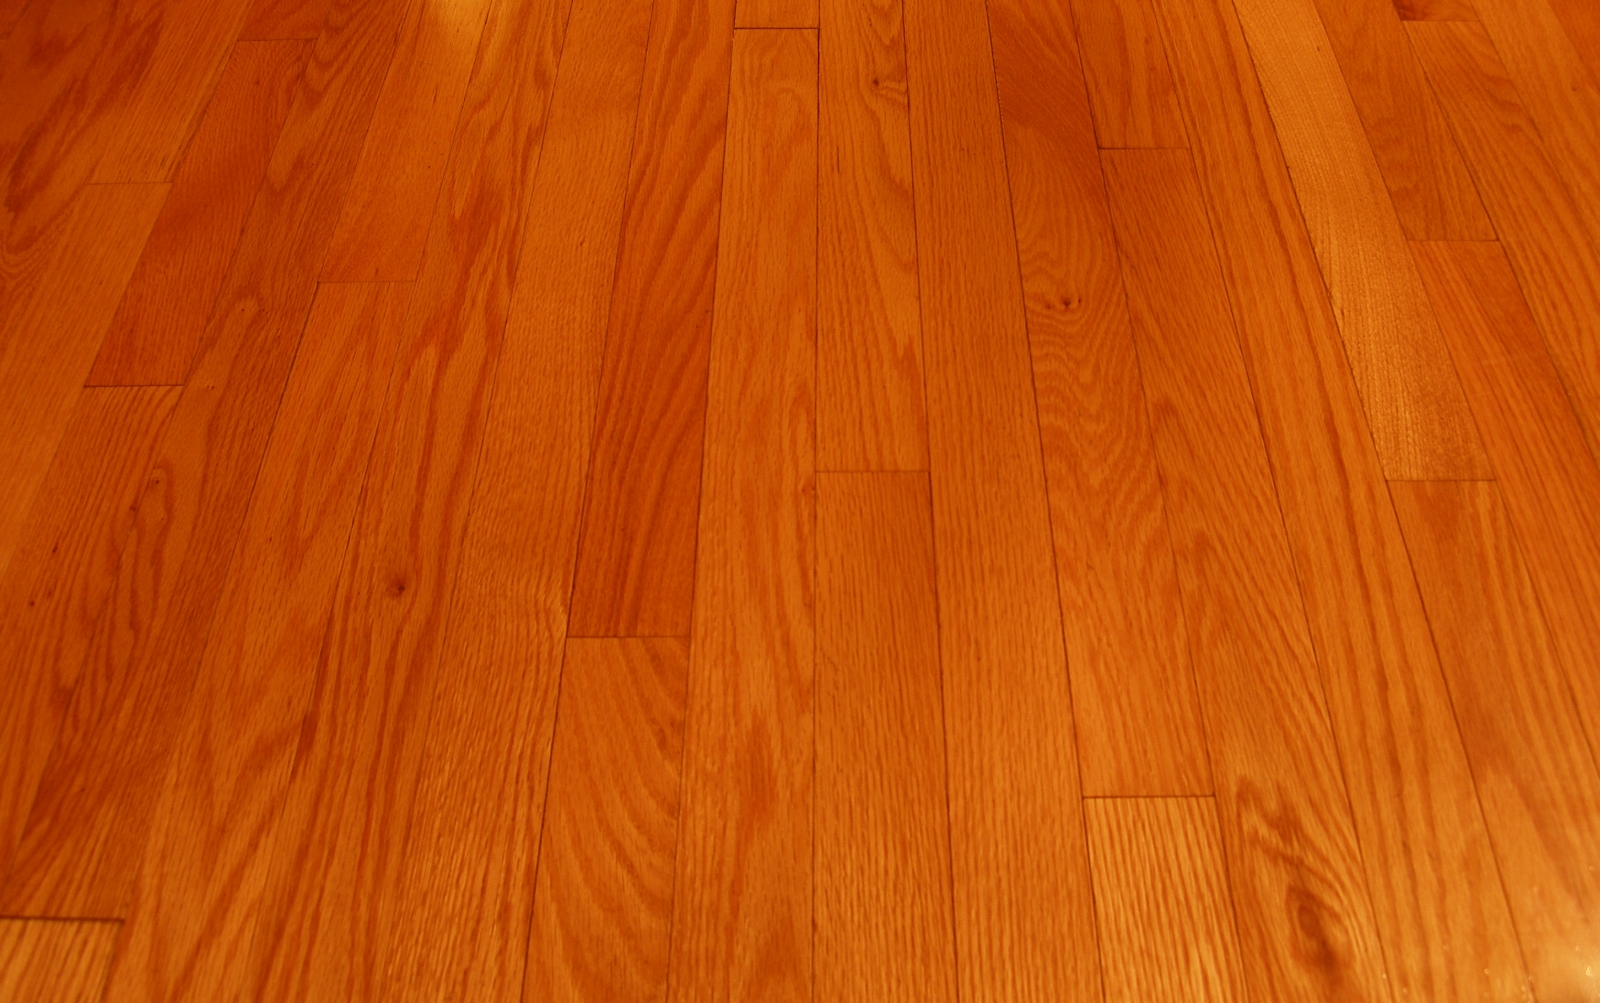 Hardwood floor pictures flooring ideas home for Hardwood installation